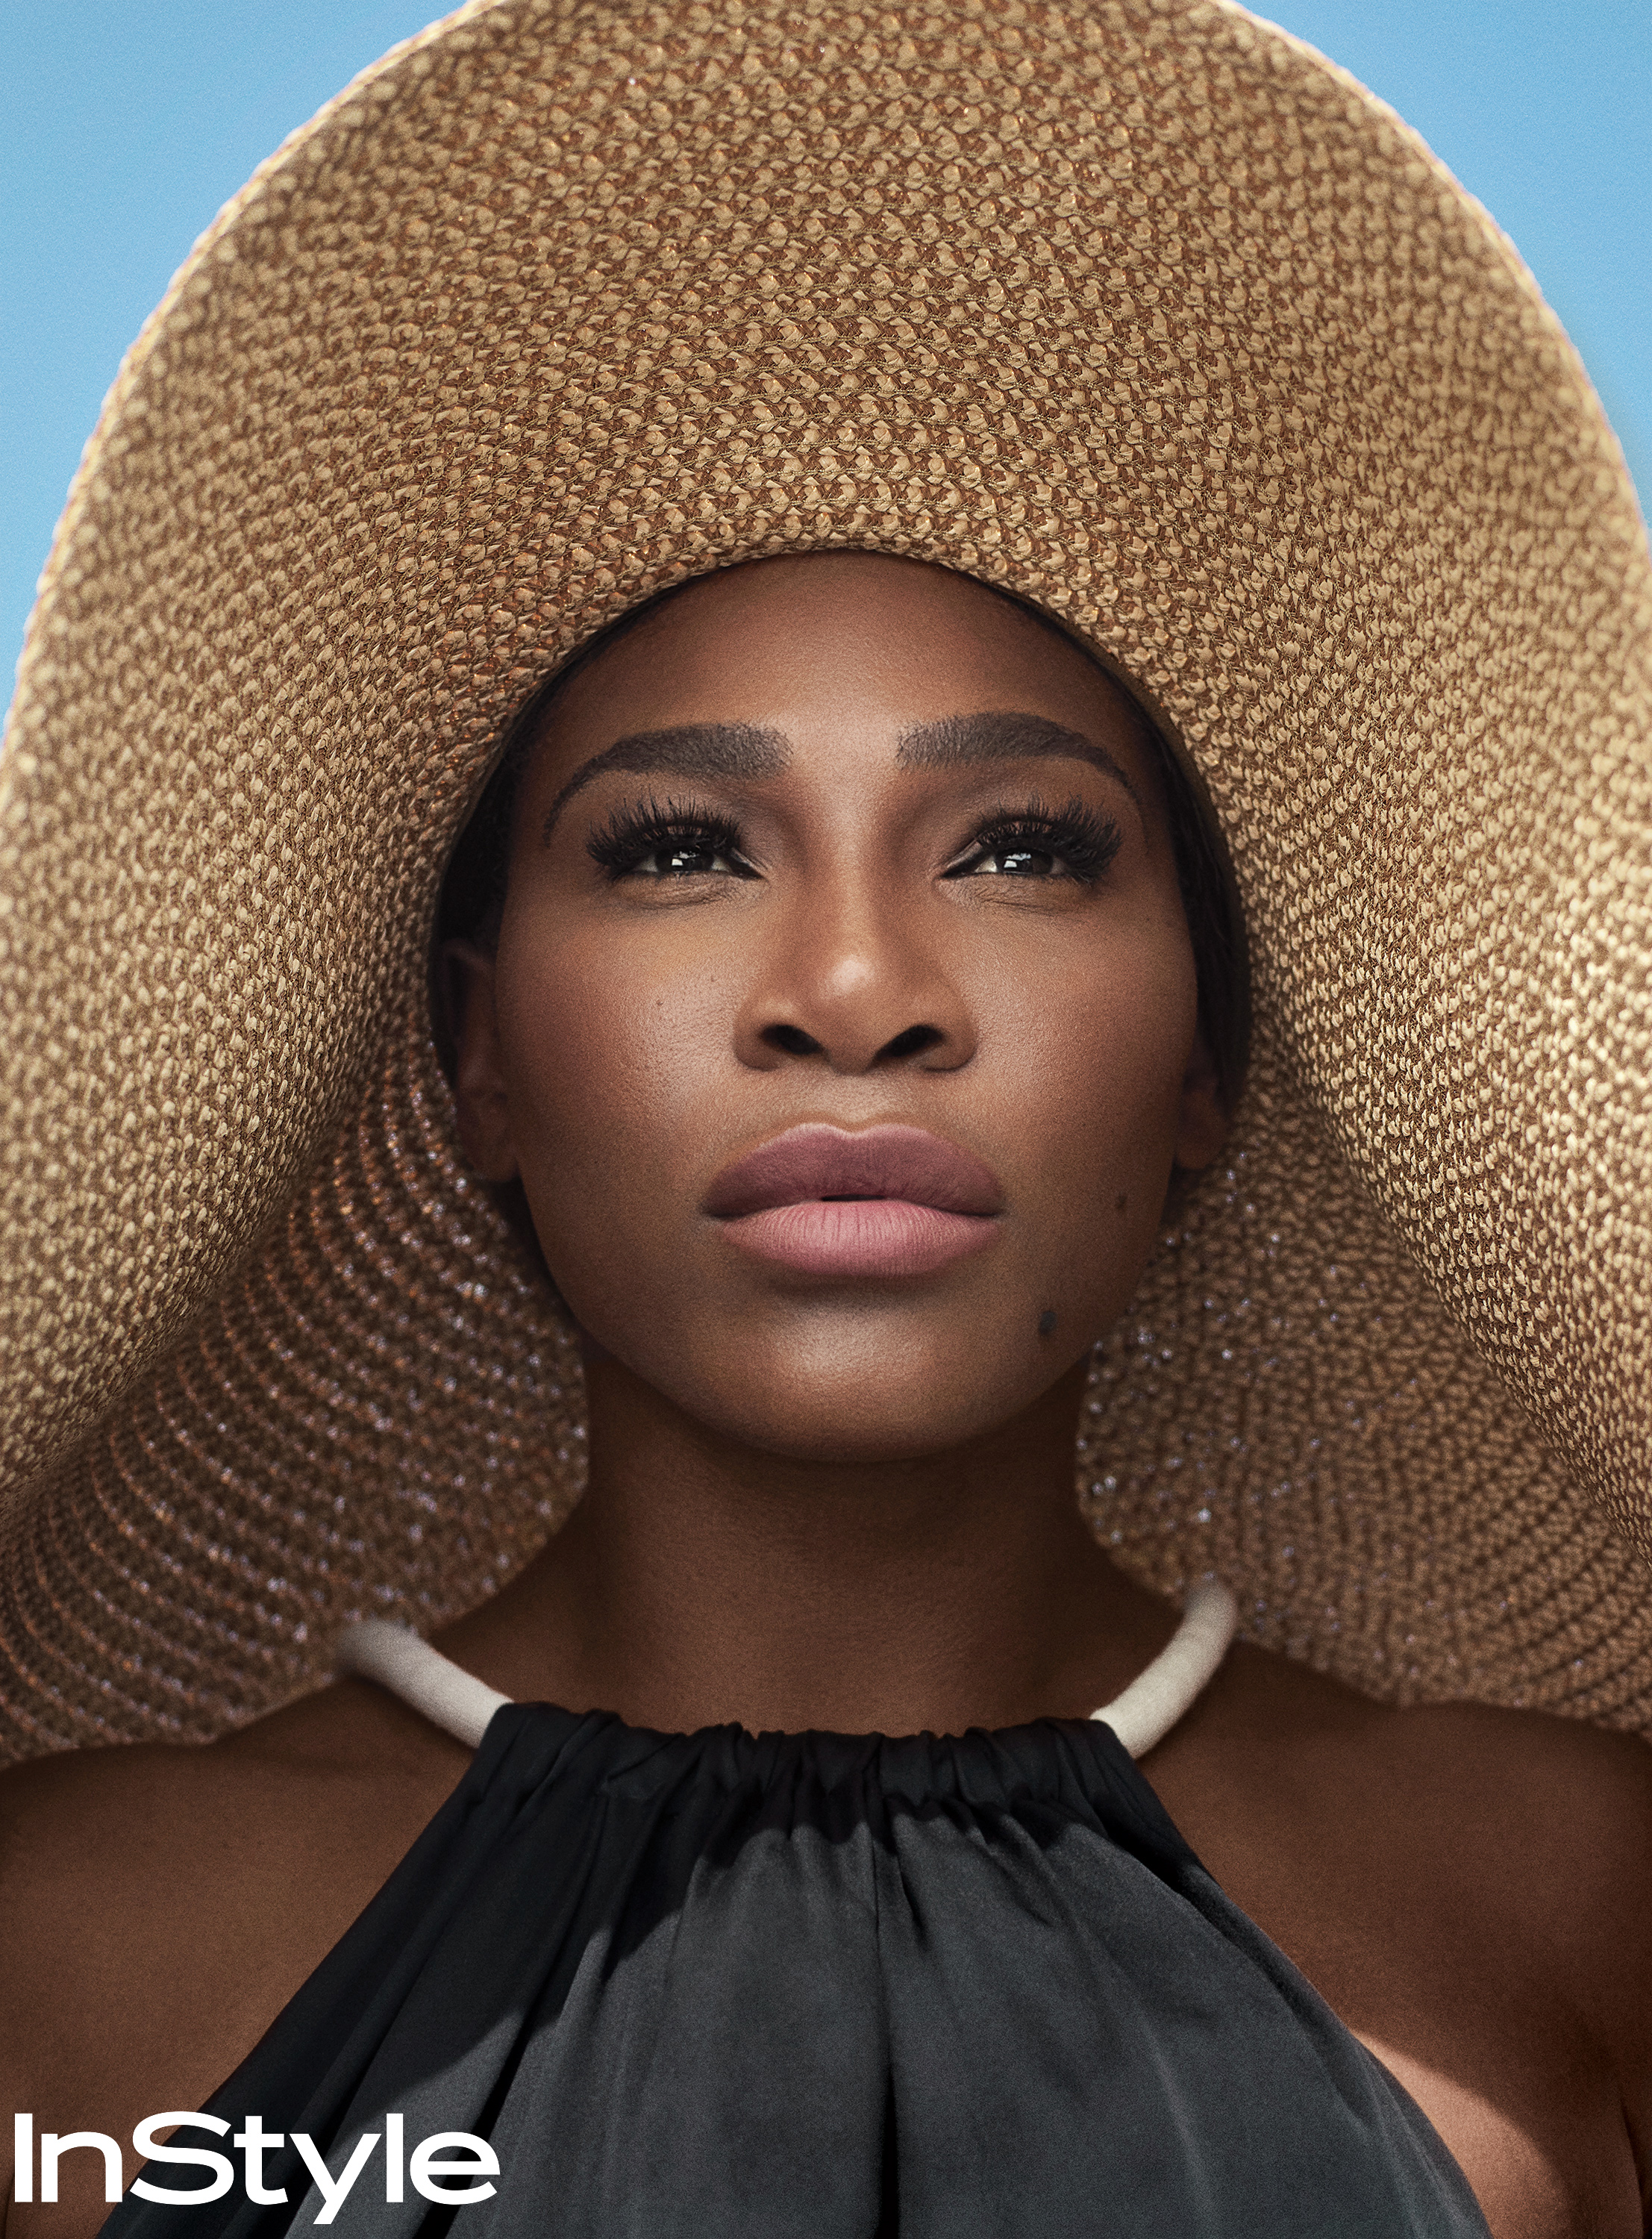 Serena Williams on the cover of InStyle's inaugural Badass Women issue.